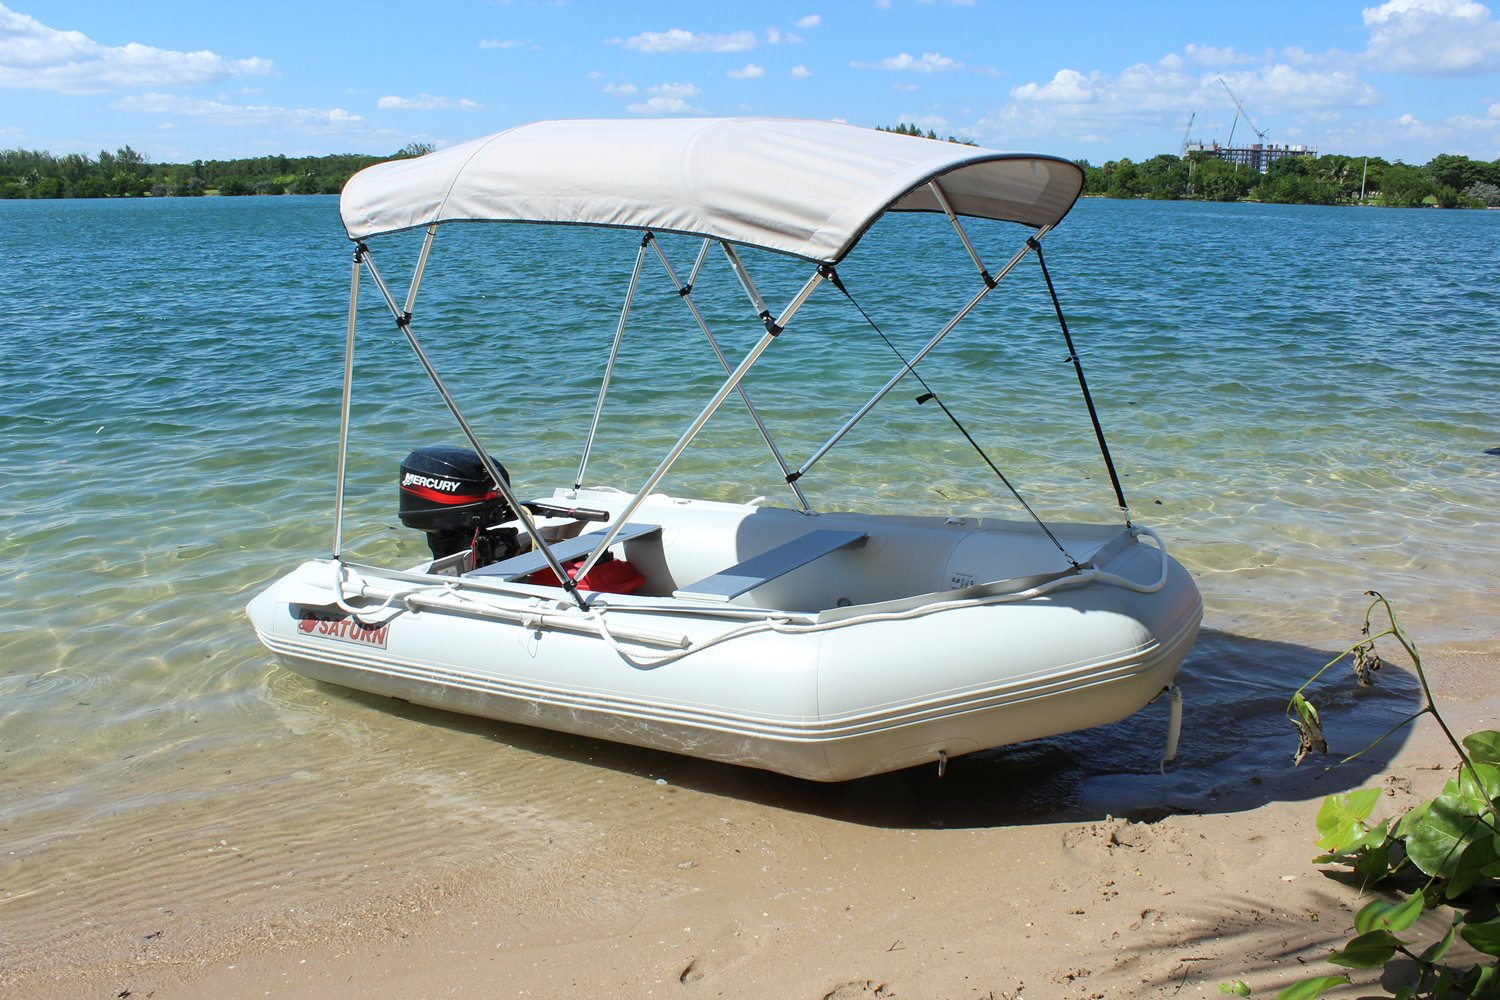 2016 11' Inflatable Boat, Dinghy, Tender